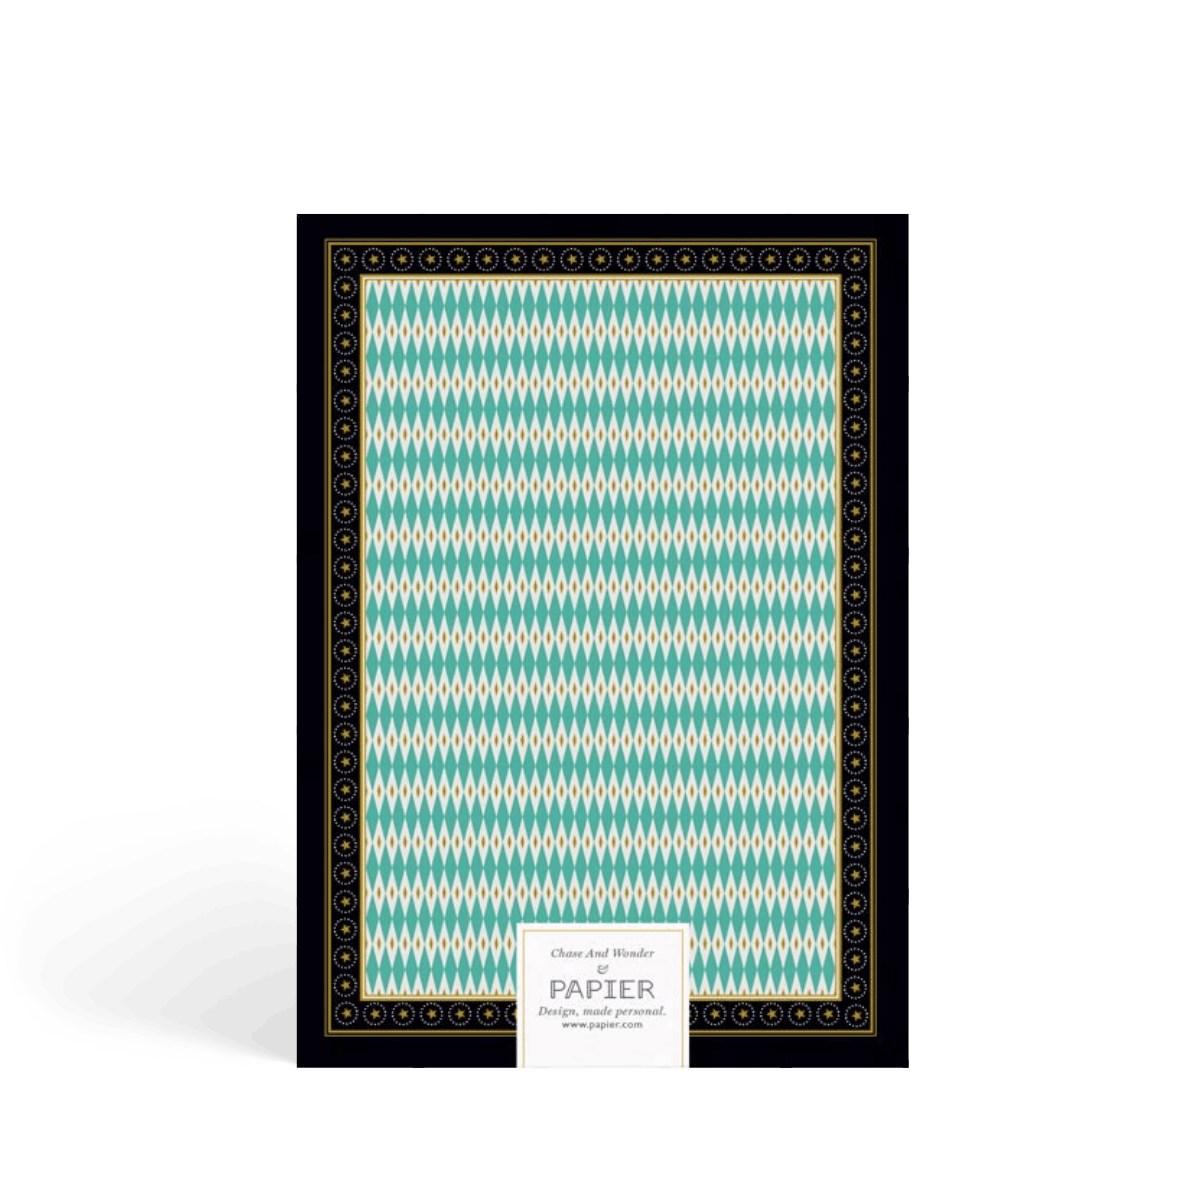 Https%3a%2f%2fwww.papier.com%2fproduct image%2f13568%2f5%2fdeco diamond green 3478 back 1569442696.png?ixlib=rb 1.1